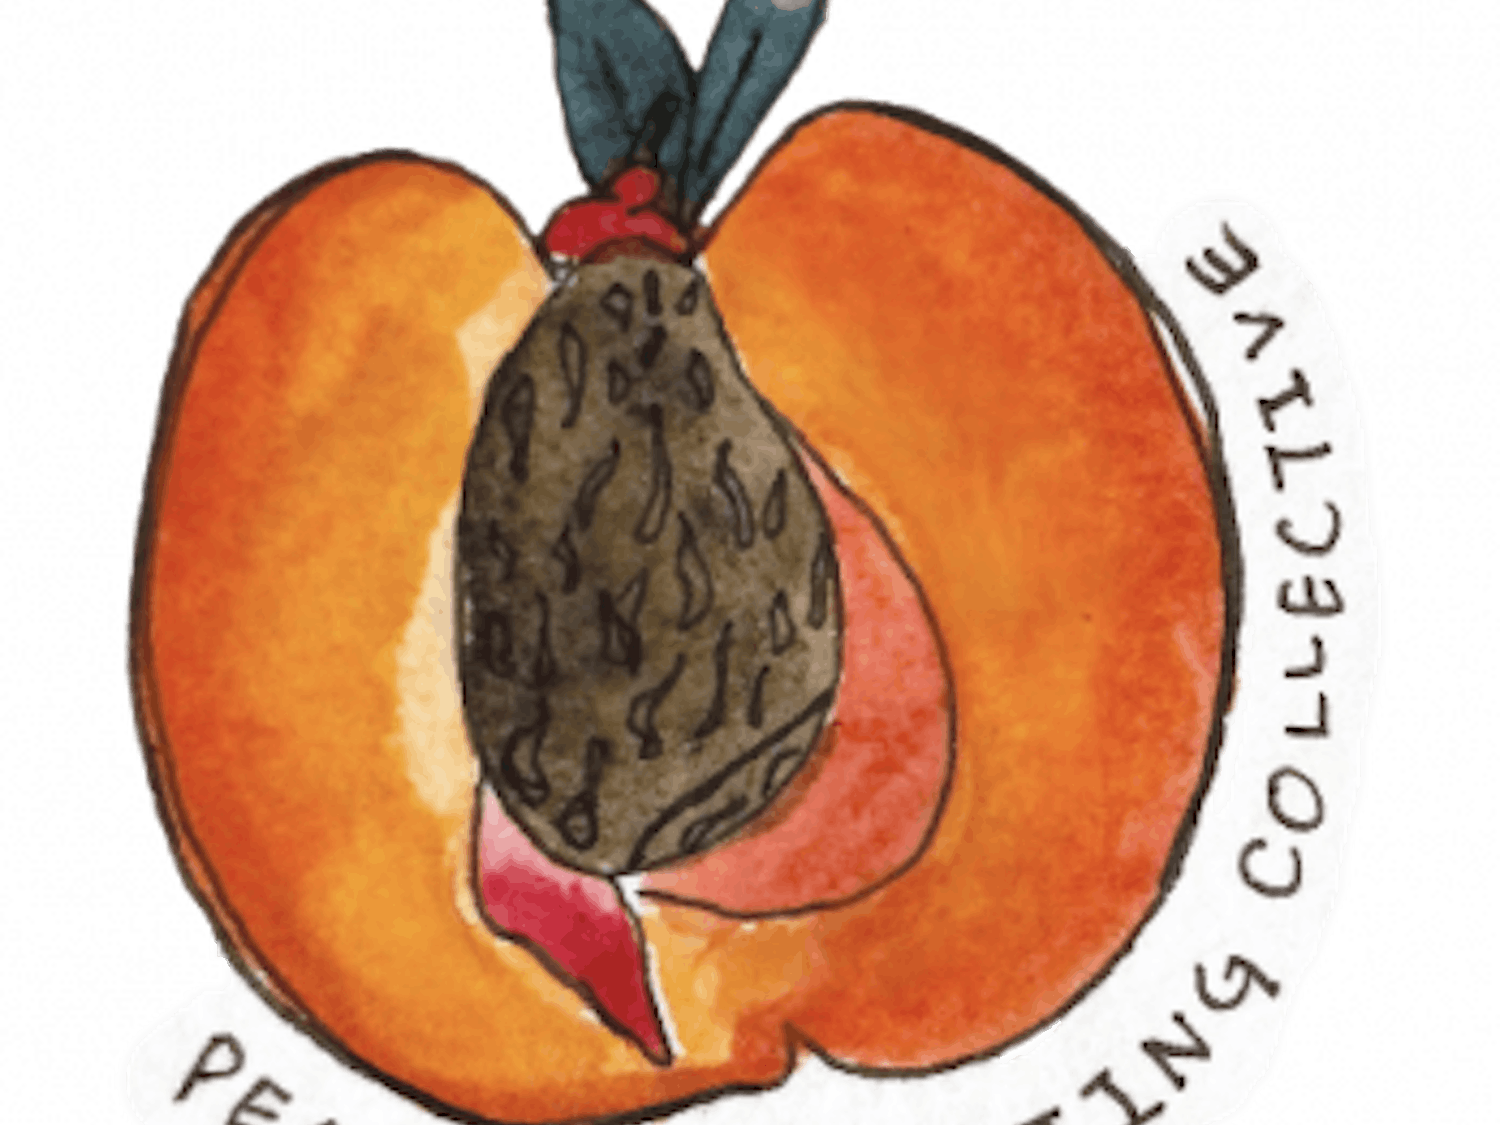 Peach-Pit-Writing-Collective